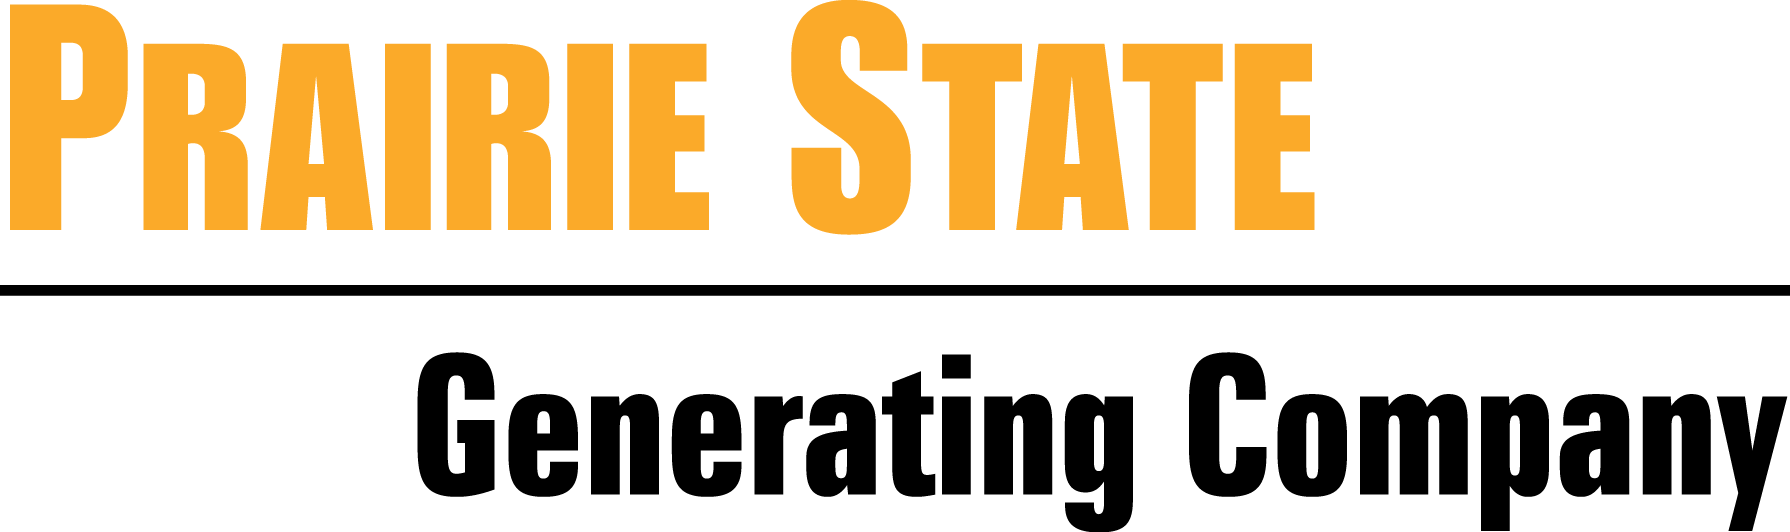 Prairie State Generating Company logo